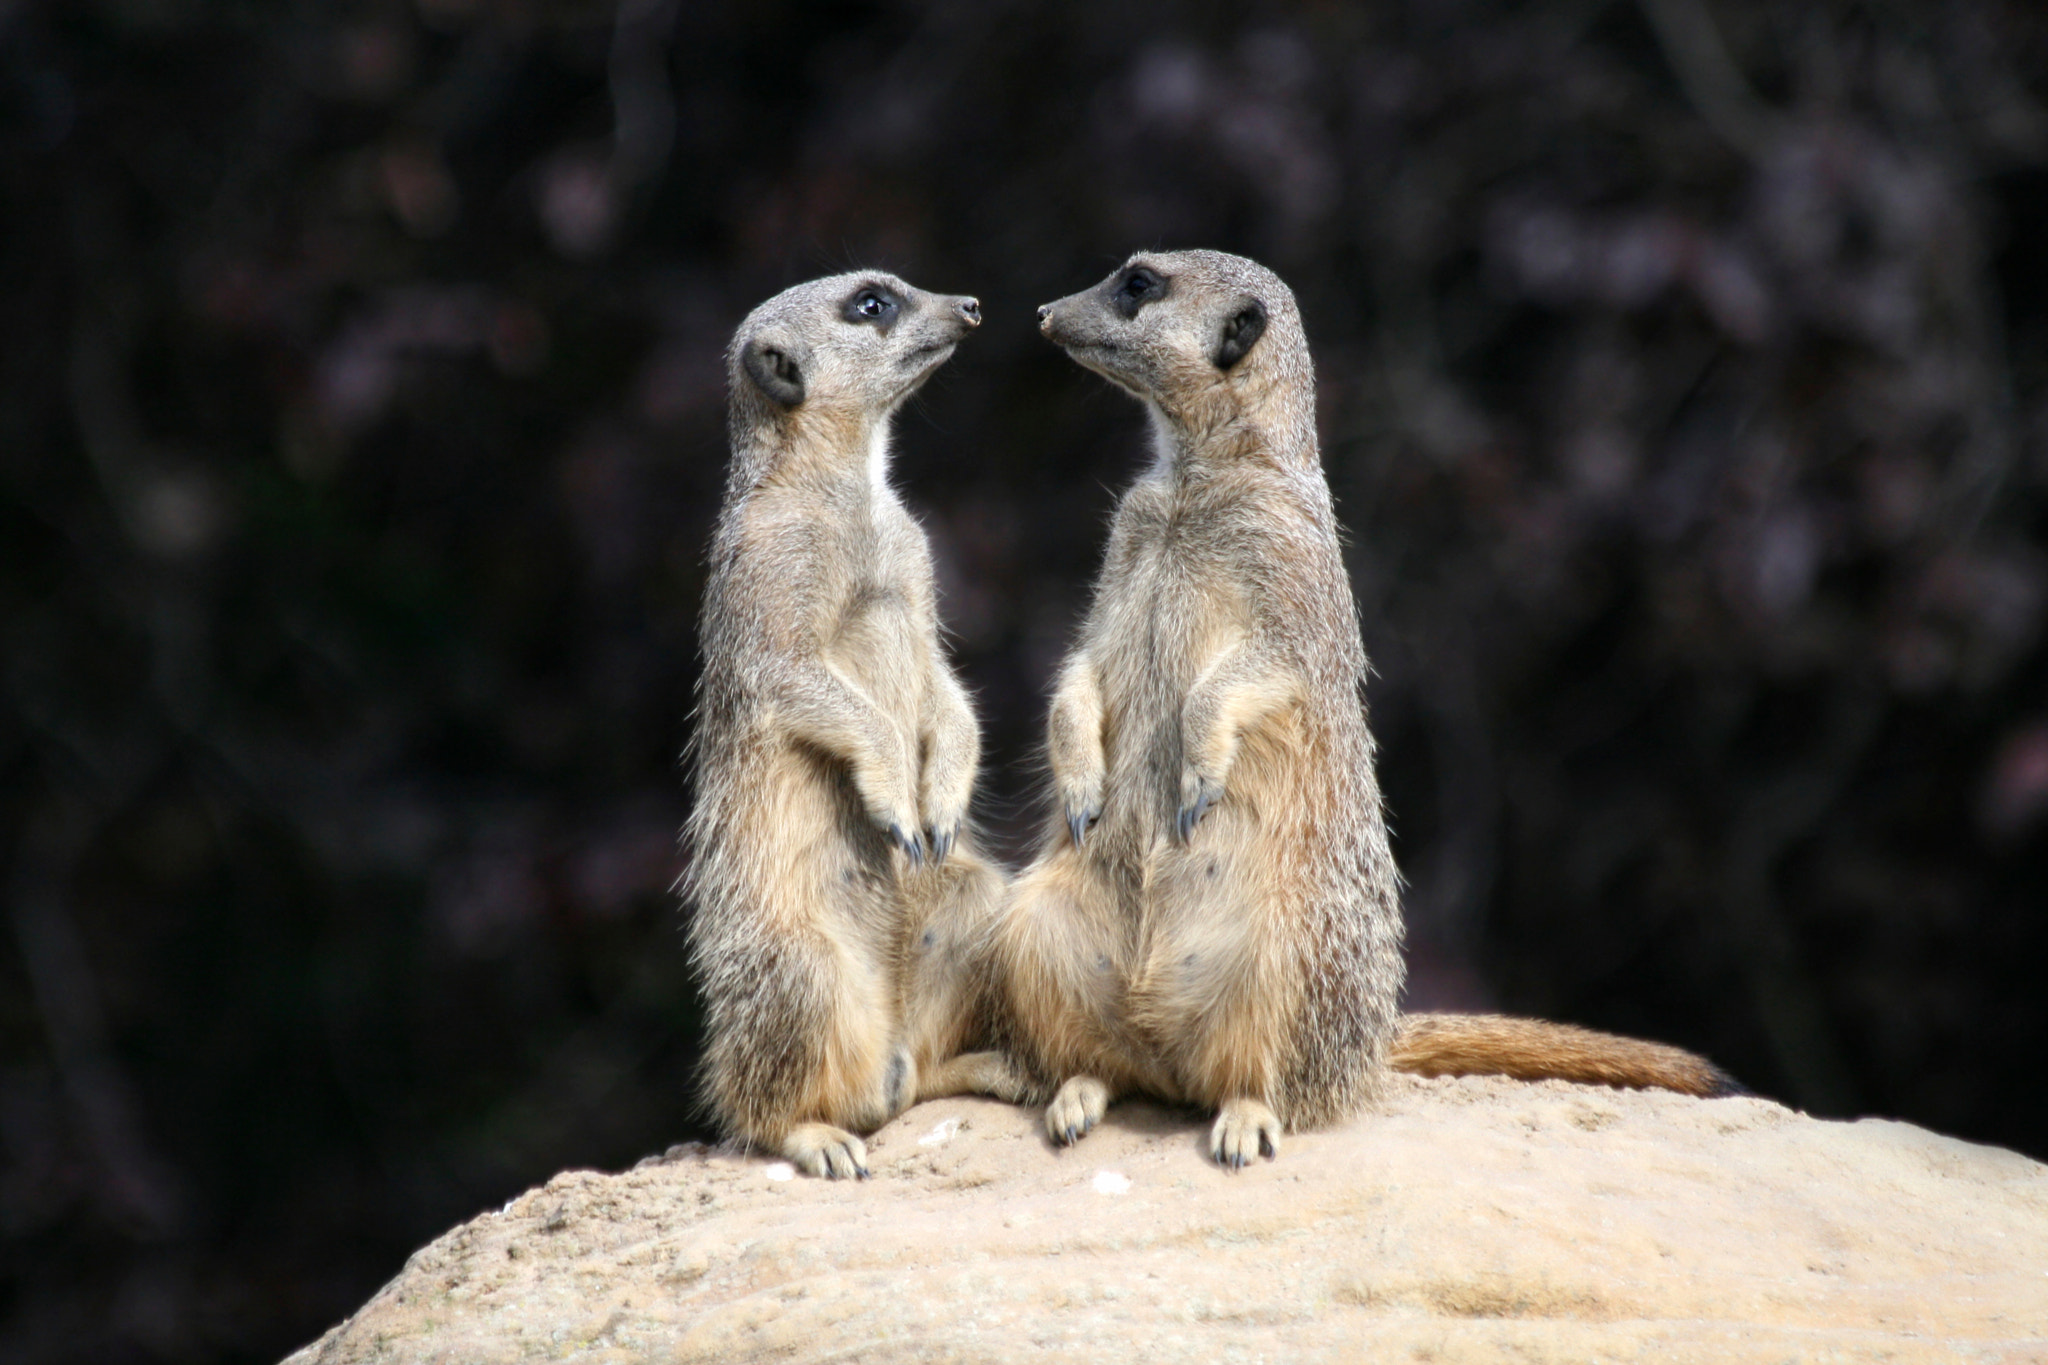 Photograph Meerkats in Love by Patrick Ambrose on 500px